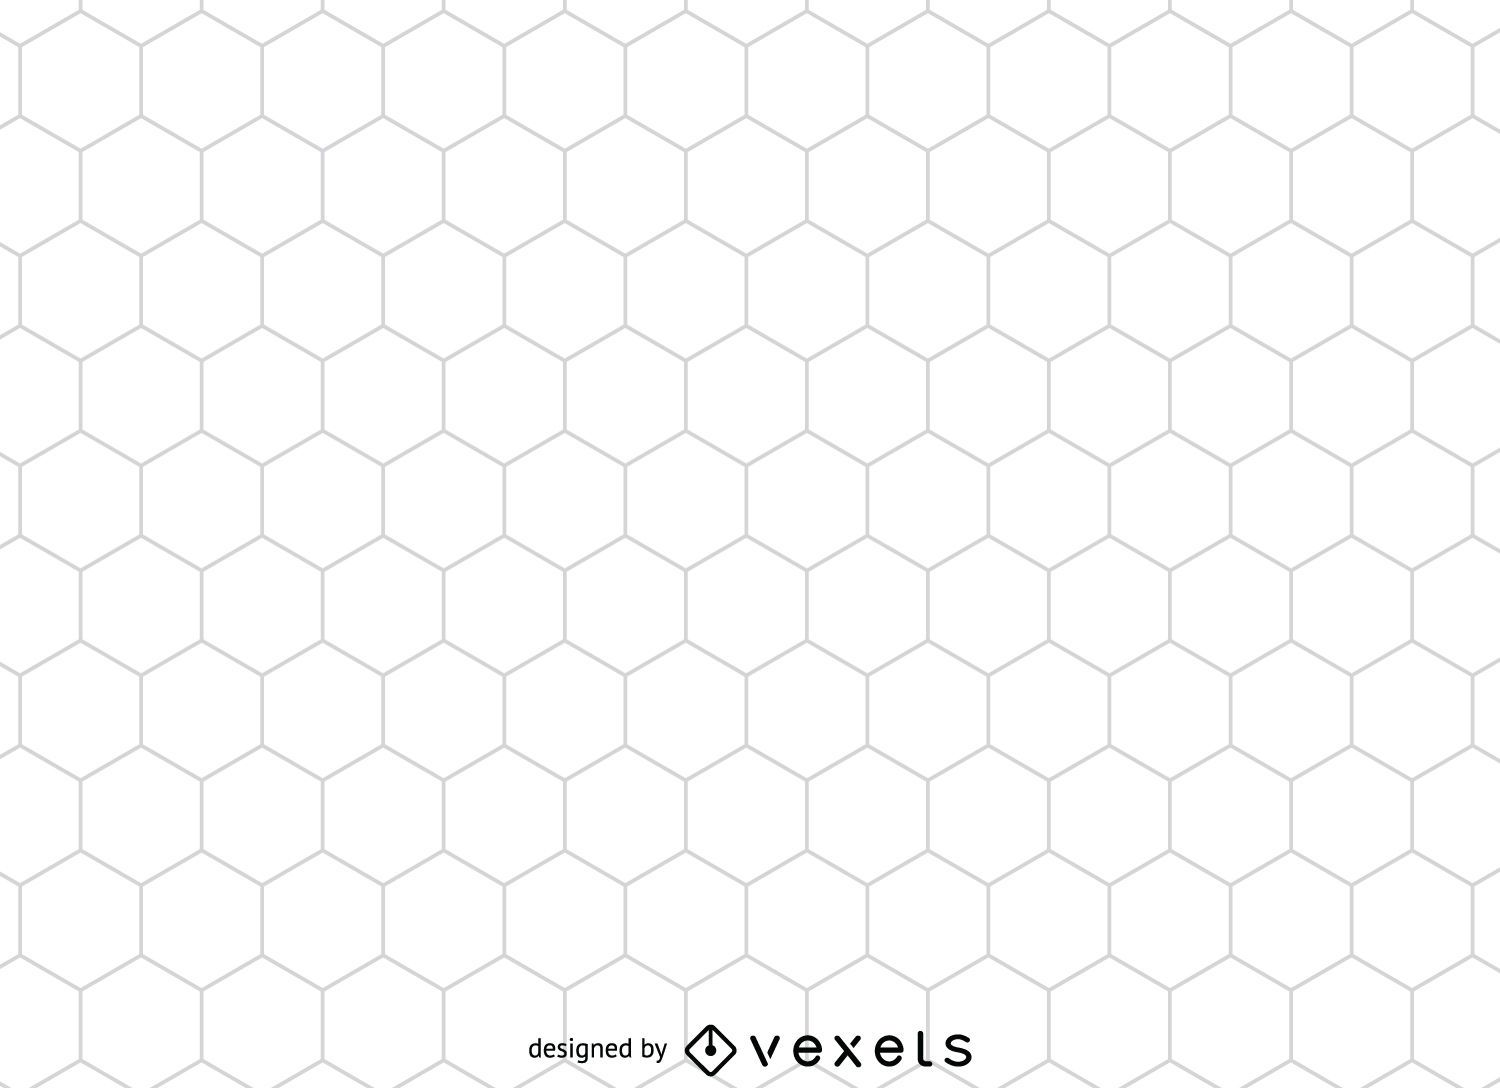 Honeycomb Design Vector | www.imgkid.com - The Image Kid ...